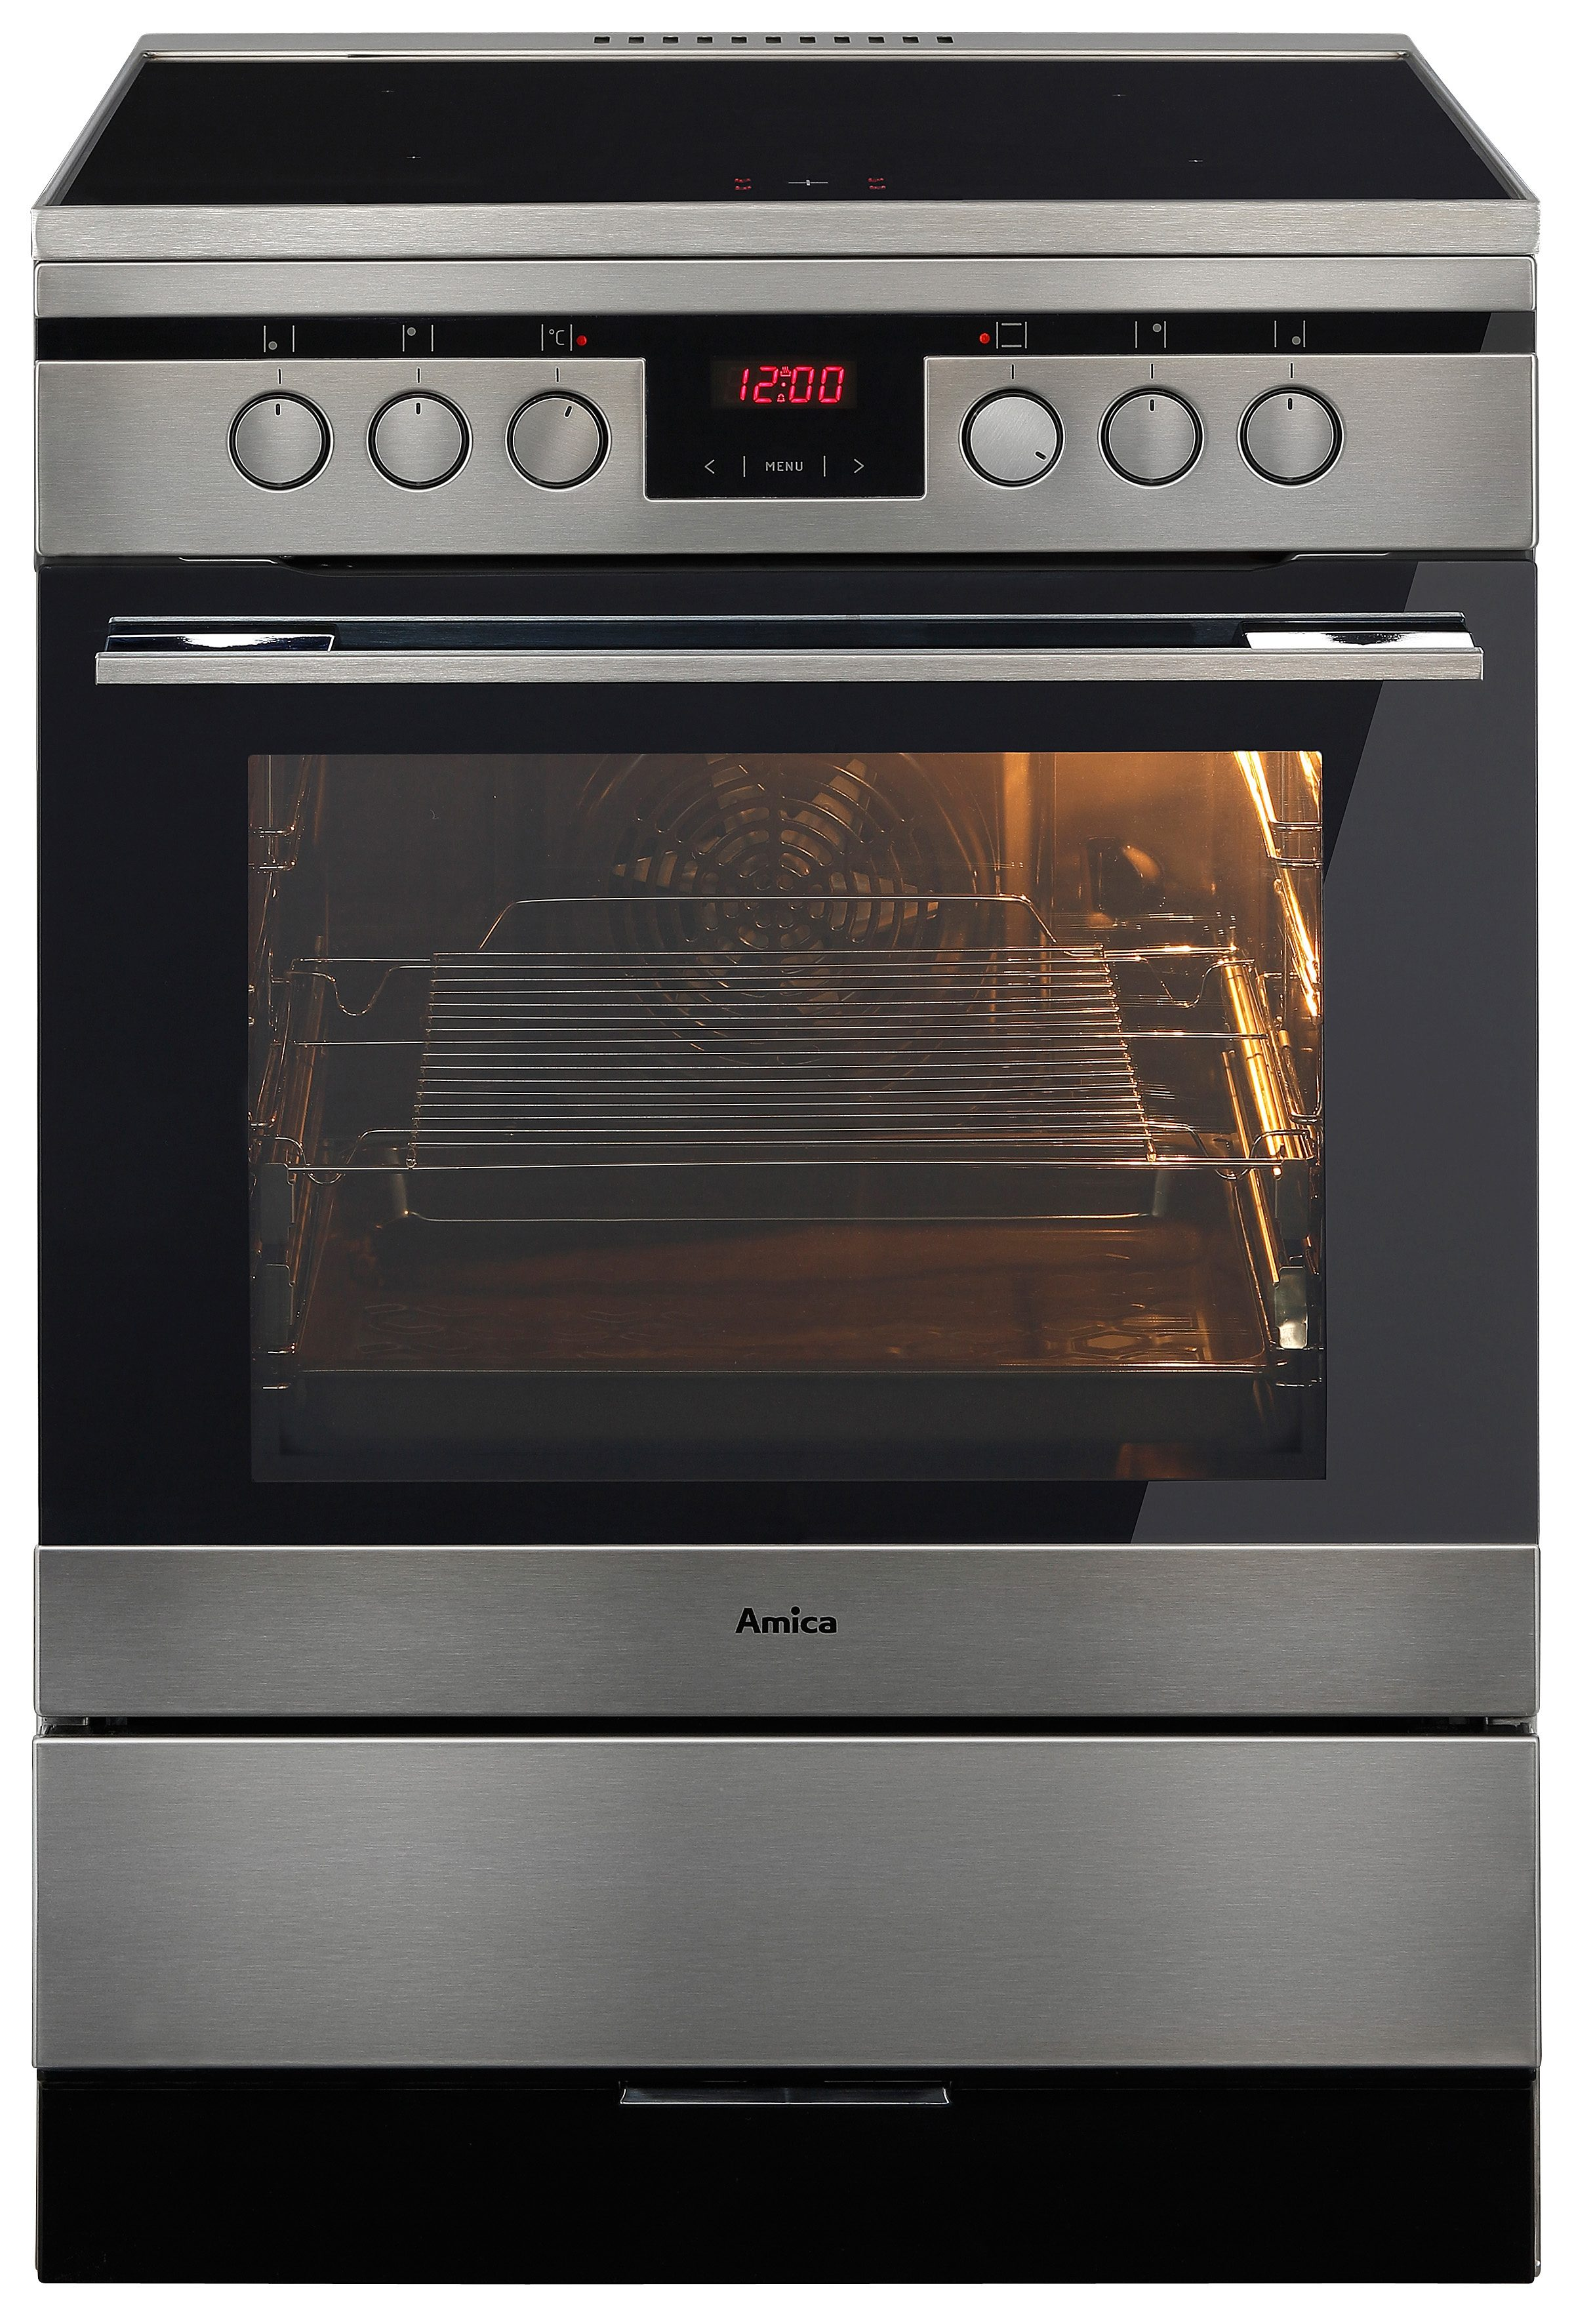 Backofen Induktion Amica Induktions-standherd 60 Cm Shi 11674 E, A | Otto